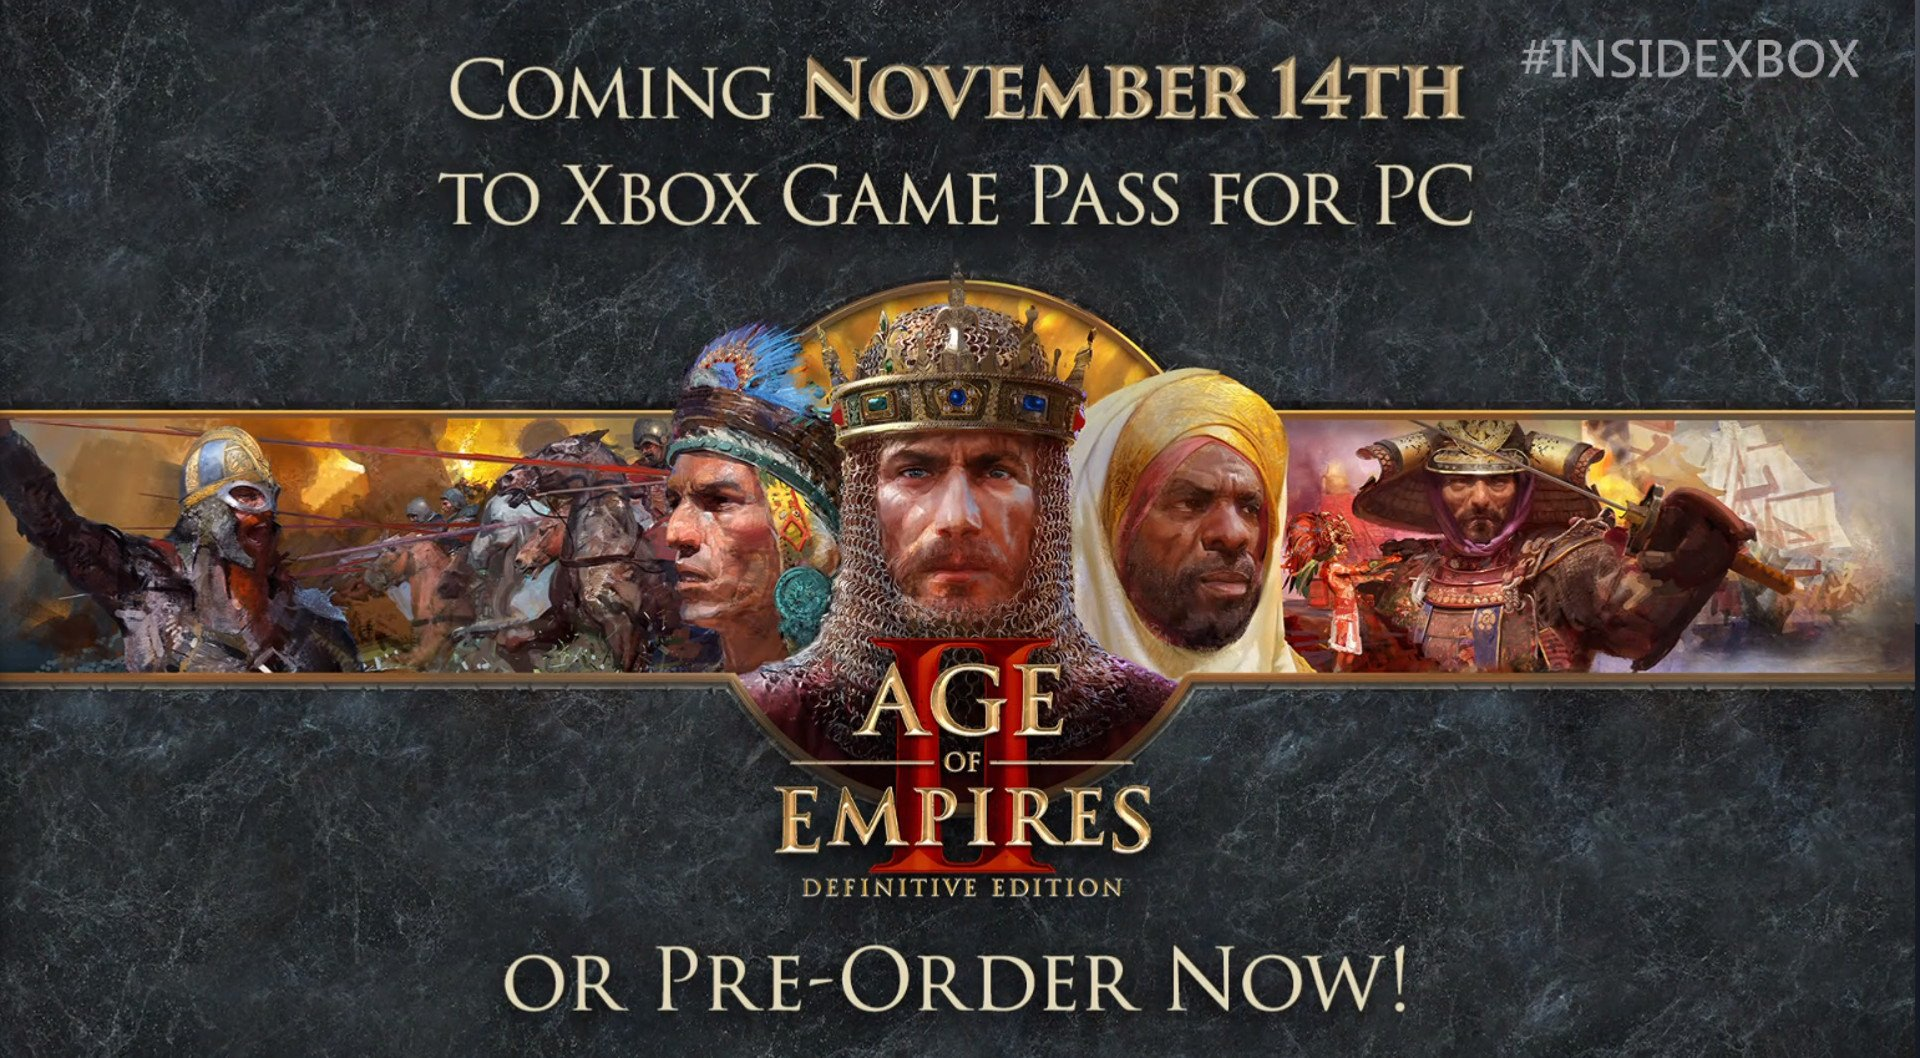 Age of Empires 2: Definitive Edition is launching on November 14 for Xbox One and PC